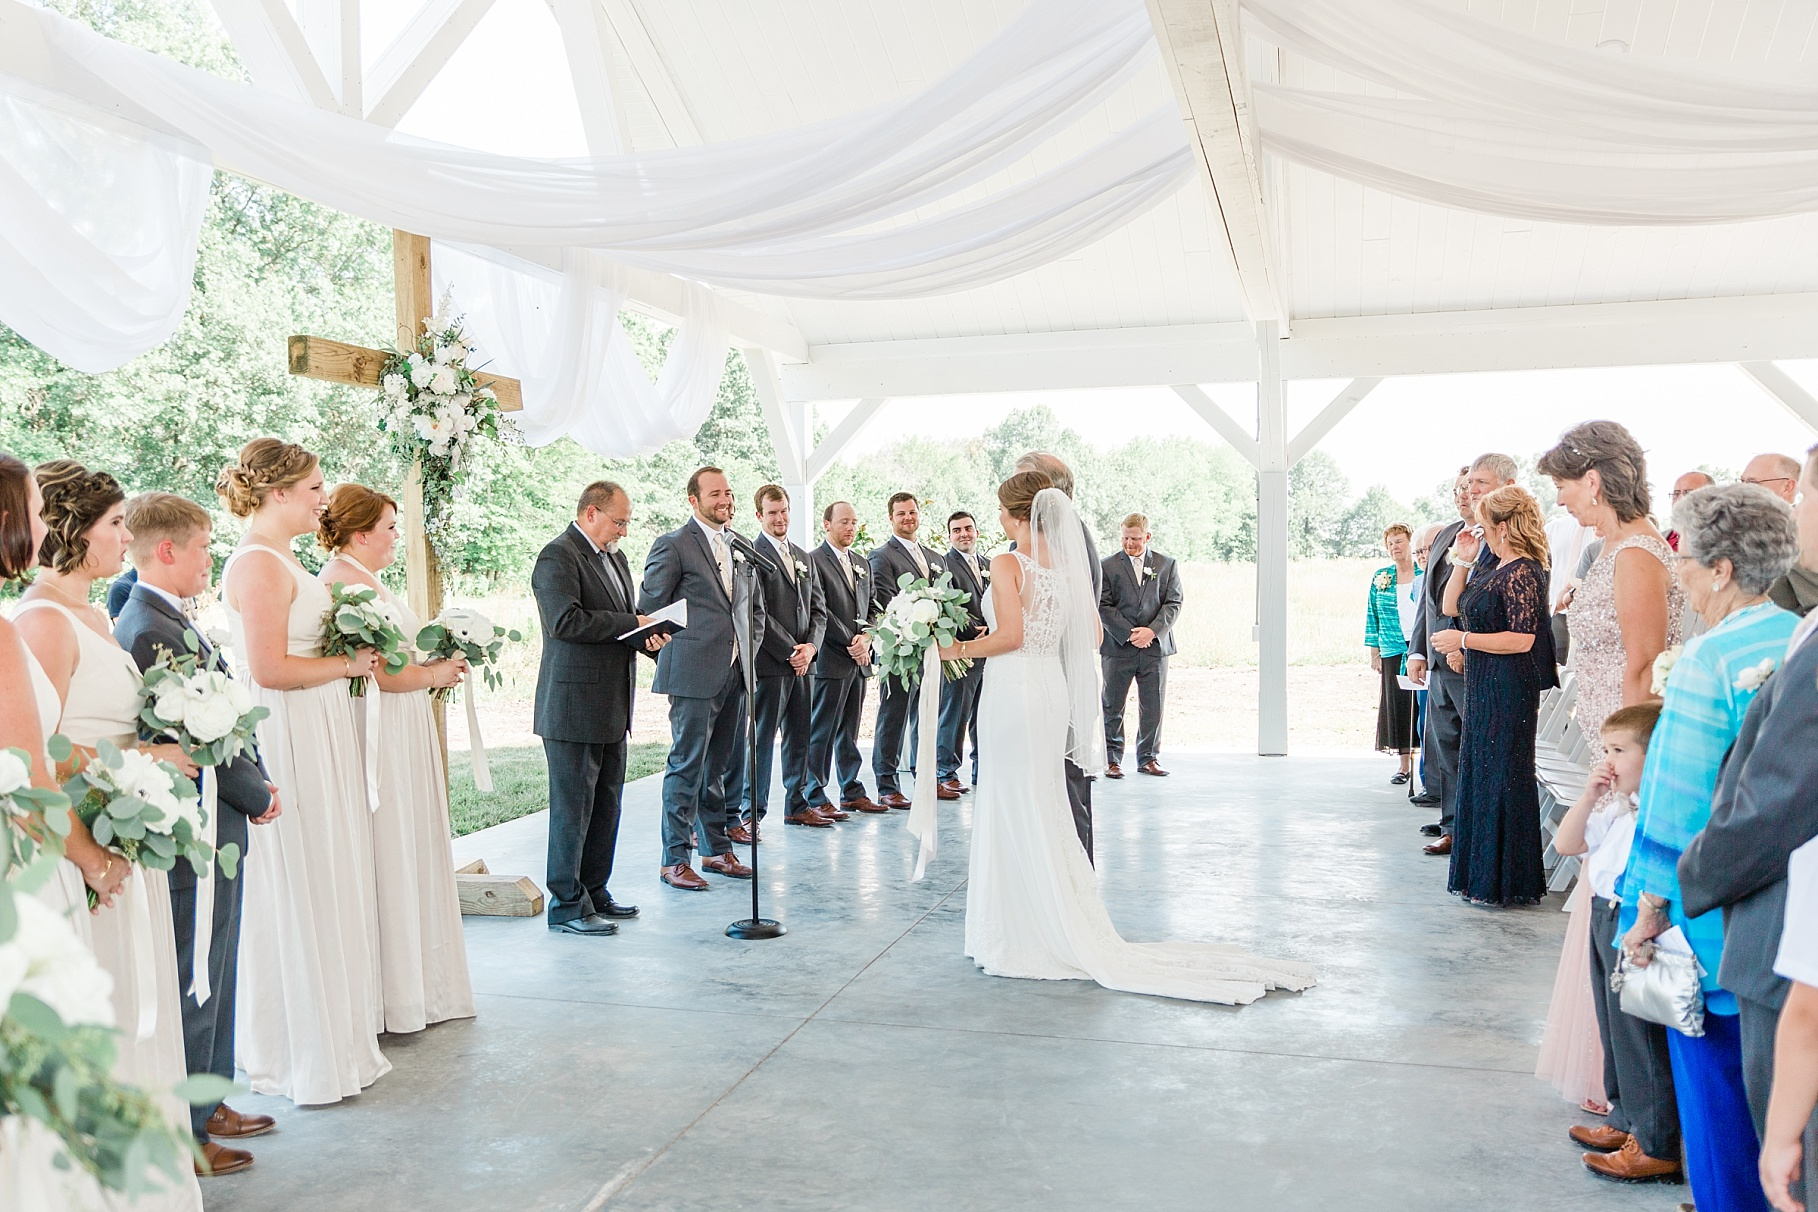 Wedding Ceremony with Confetti Pop at Emerson Fields Venue by Associate Wedding Photographer for Kelsi Kliethermes Photography Best Columbia Missouri and Maui Hawaii Wedding Photographer_0015.jpg